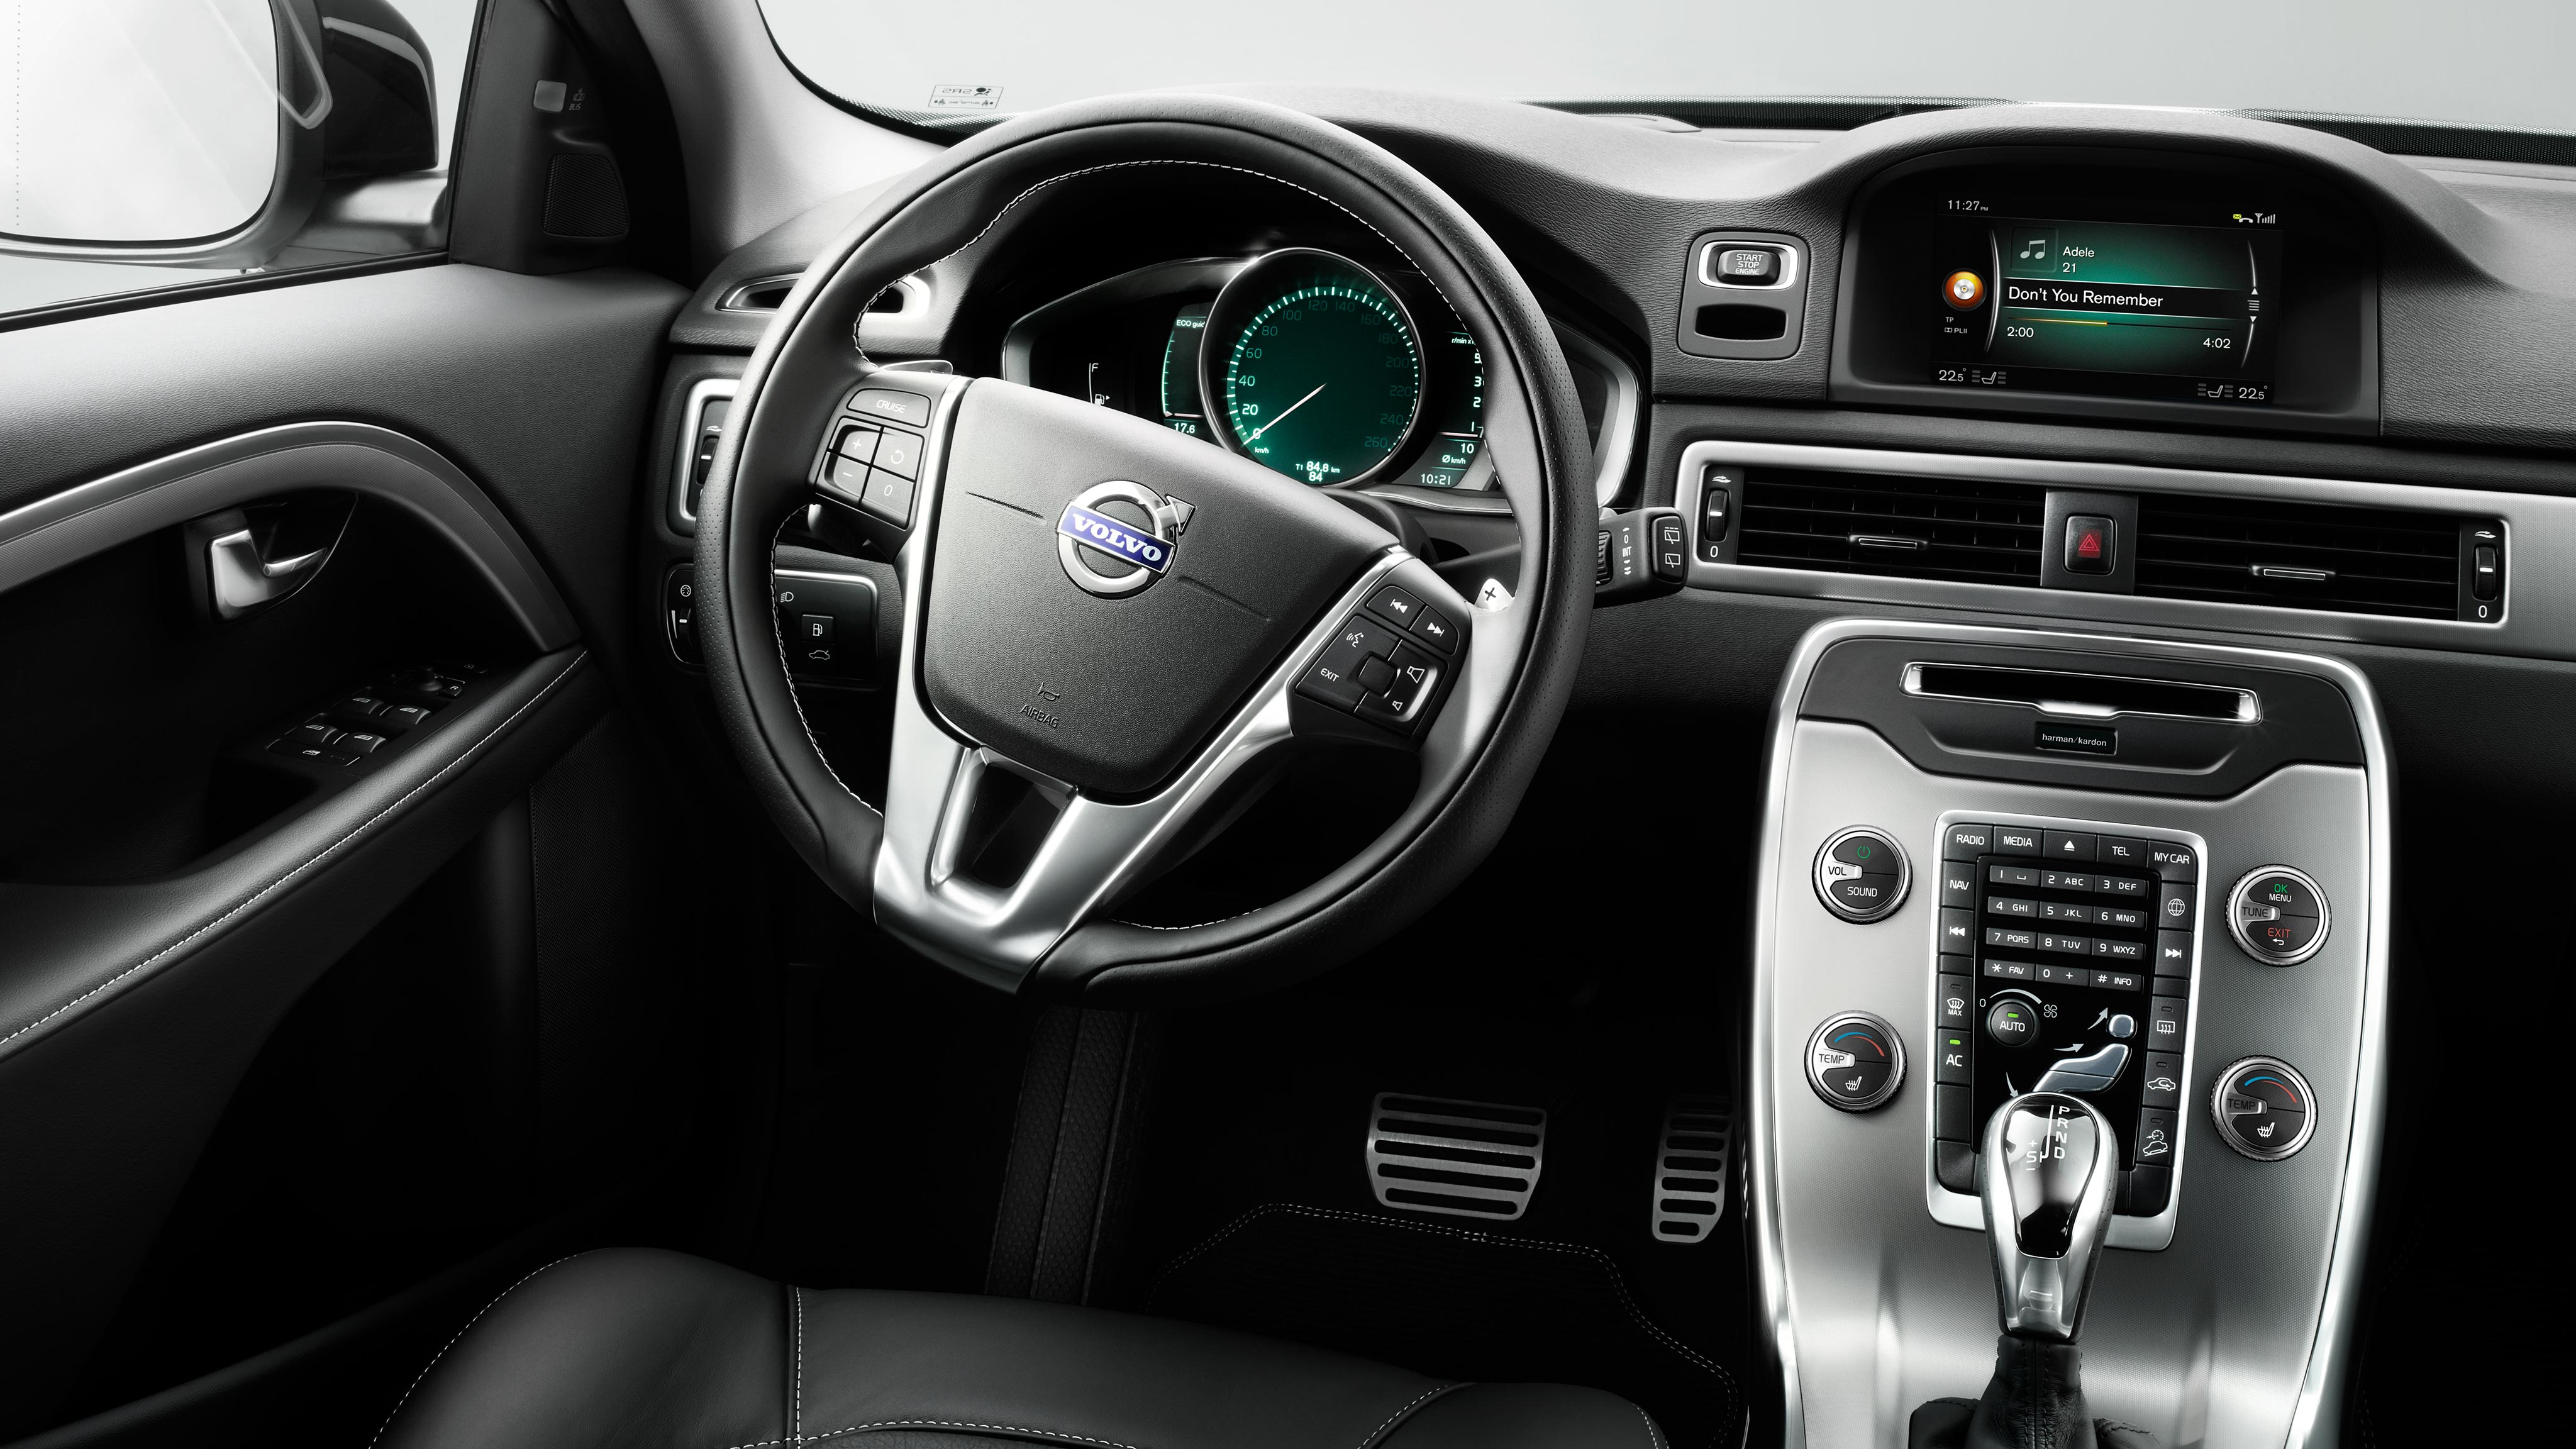 Volvo XC70 Dynamic Interior